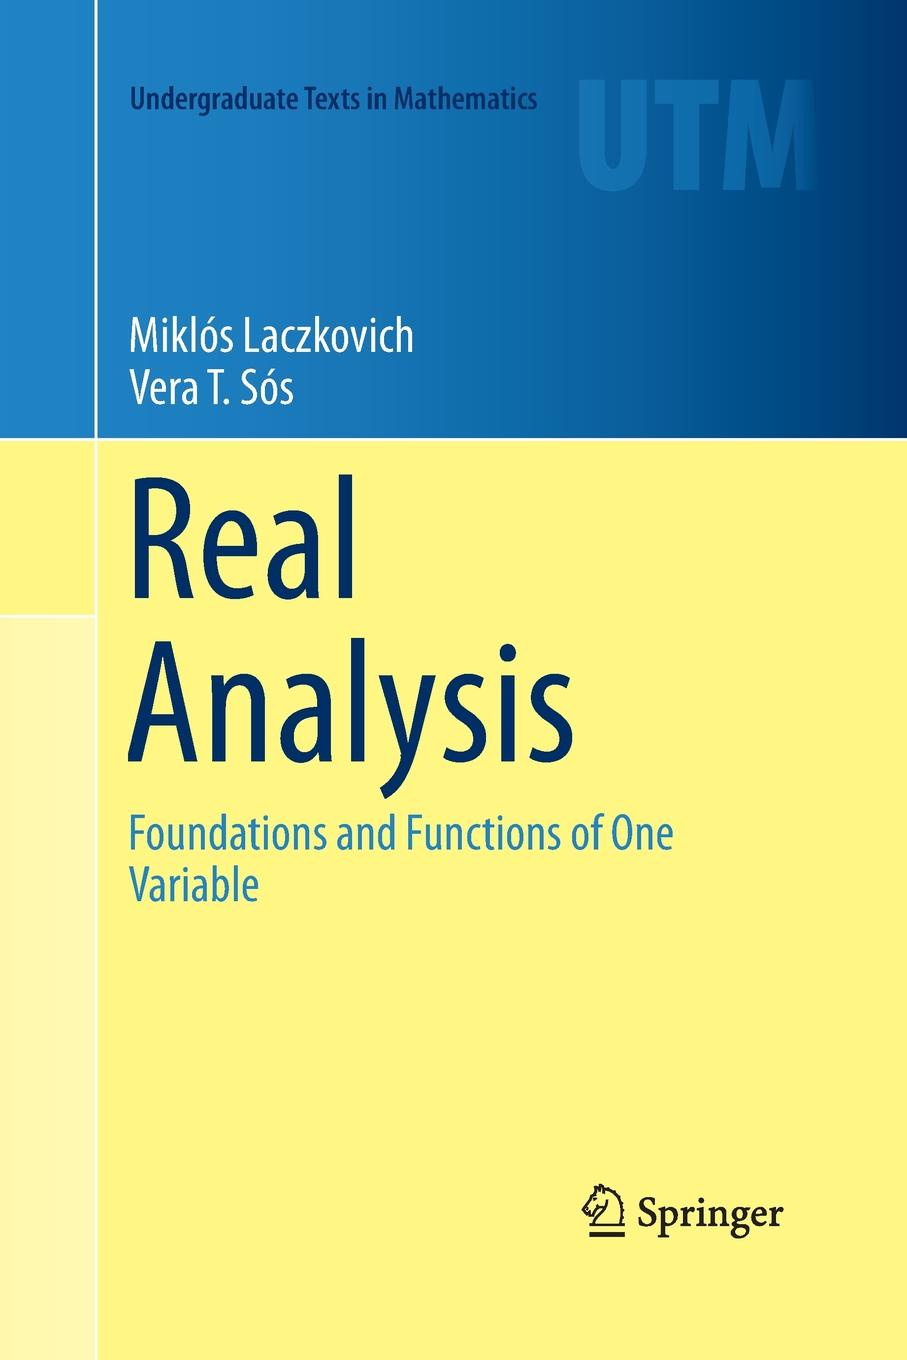 Miklós Laczkovich, Vera T. Sós Real Analysis. Foundations and Functions of One Variable ryan asleson nathaniel t schutta foundations of ajax